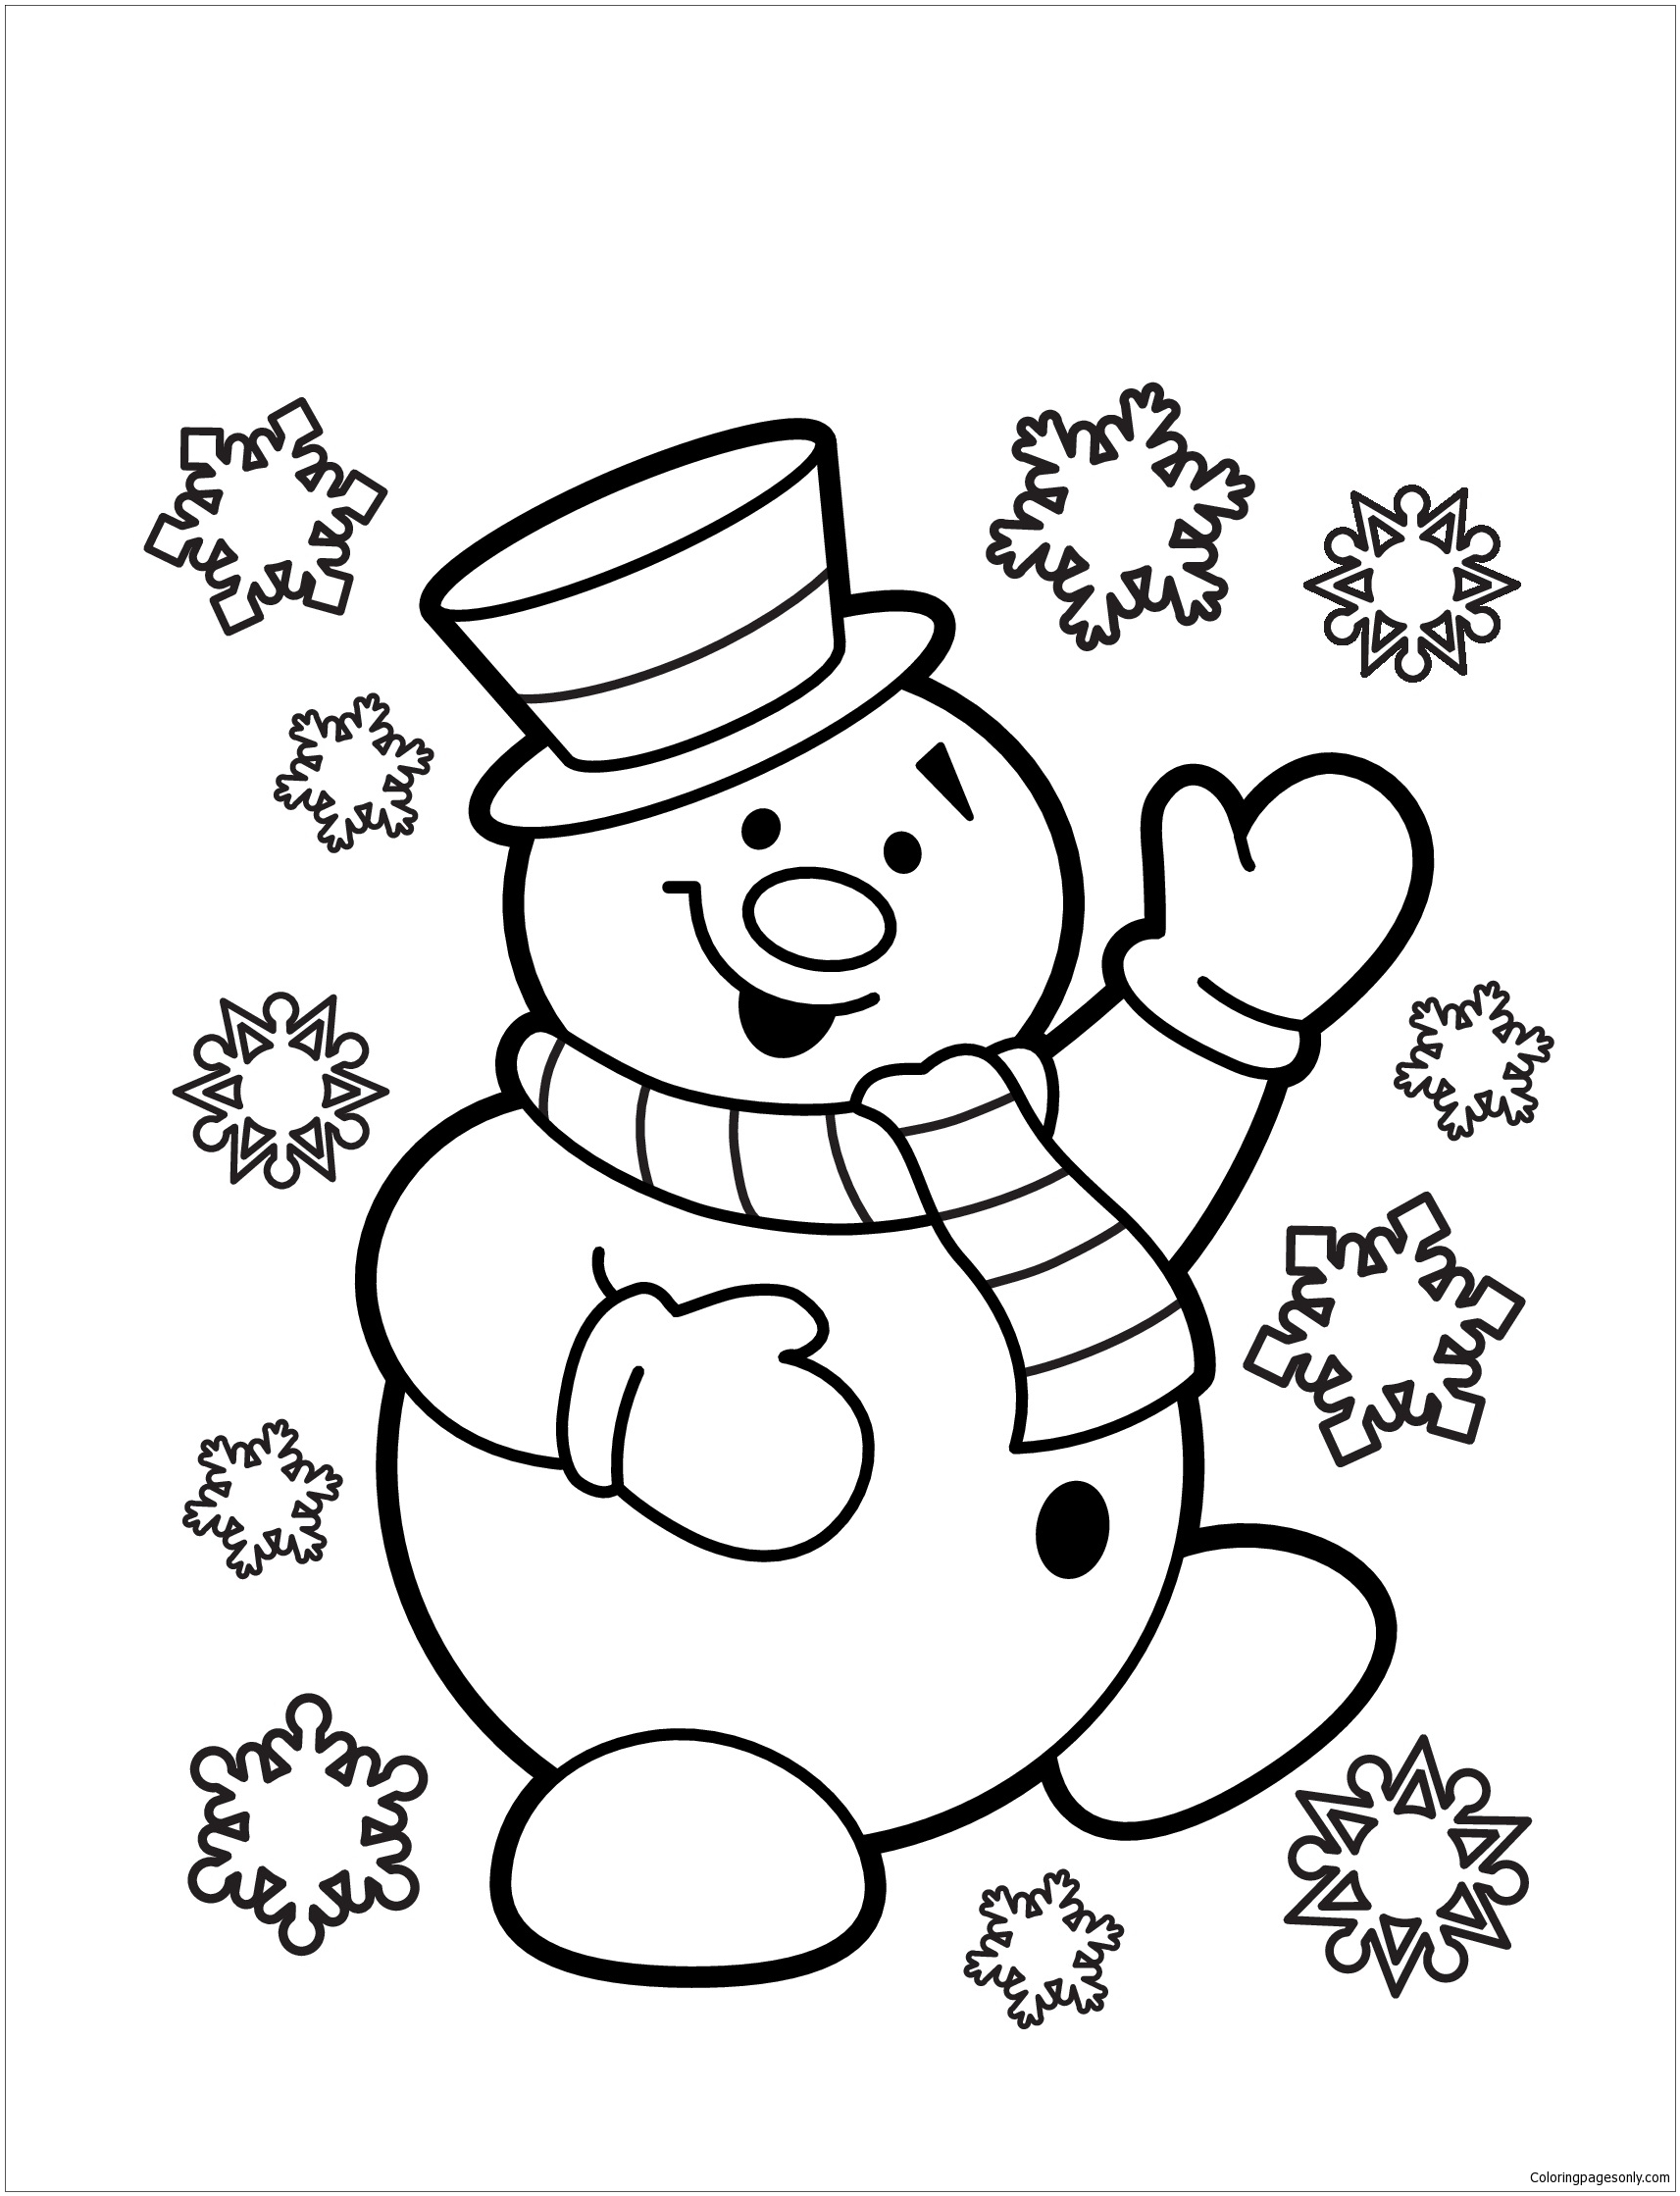 Snowman 3 coloring page free coloring pages online for Coloring pages of snowman